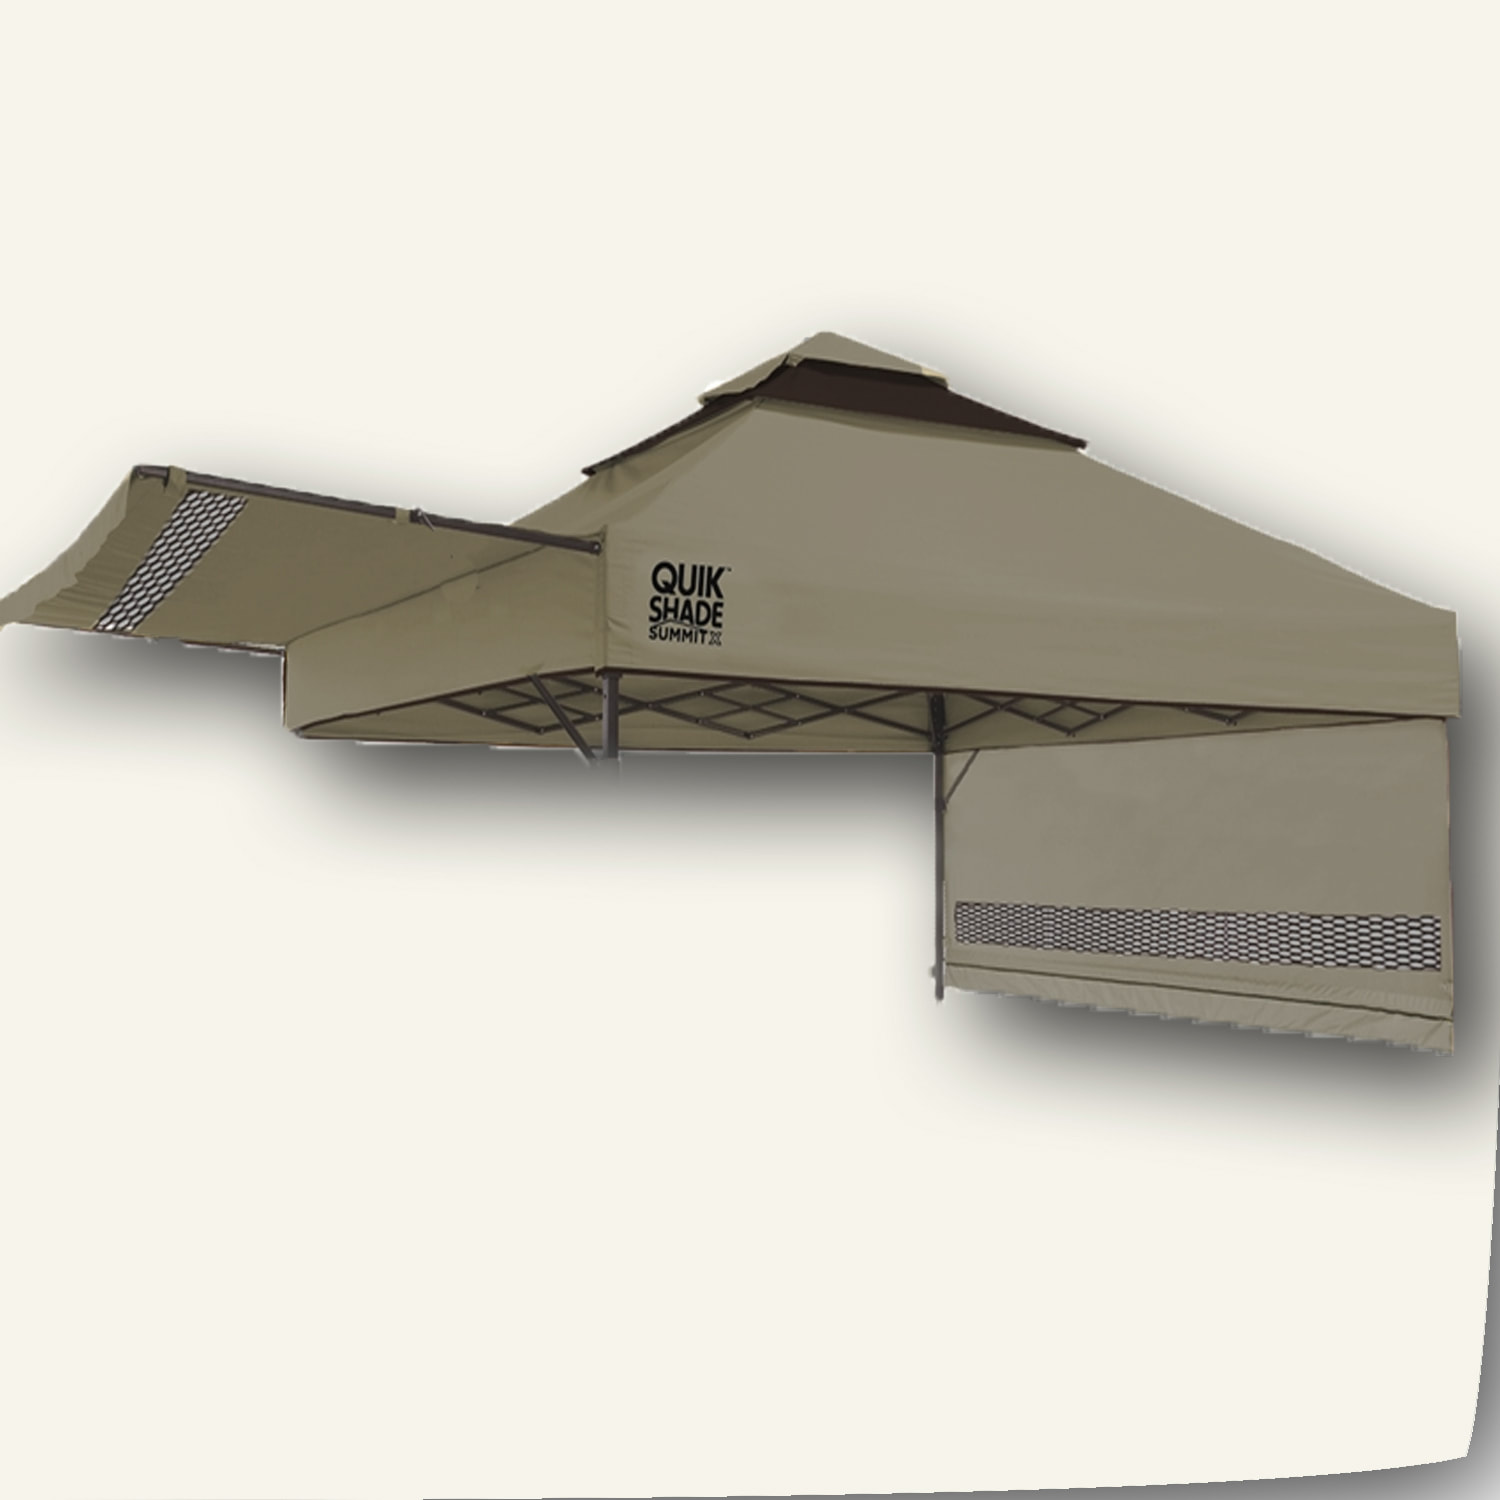 For Quik Shade Summit Sx170 Canopy Top With Awning With 2